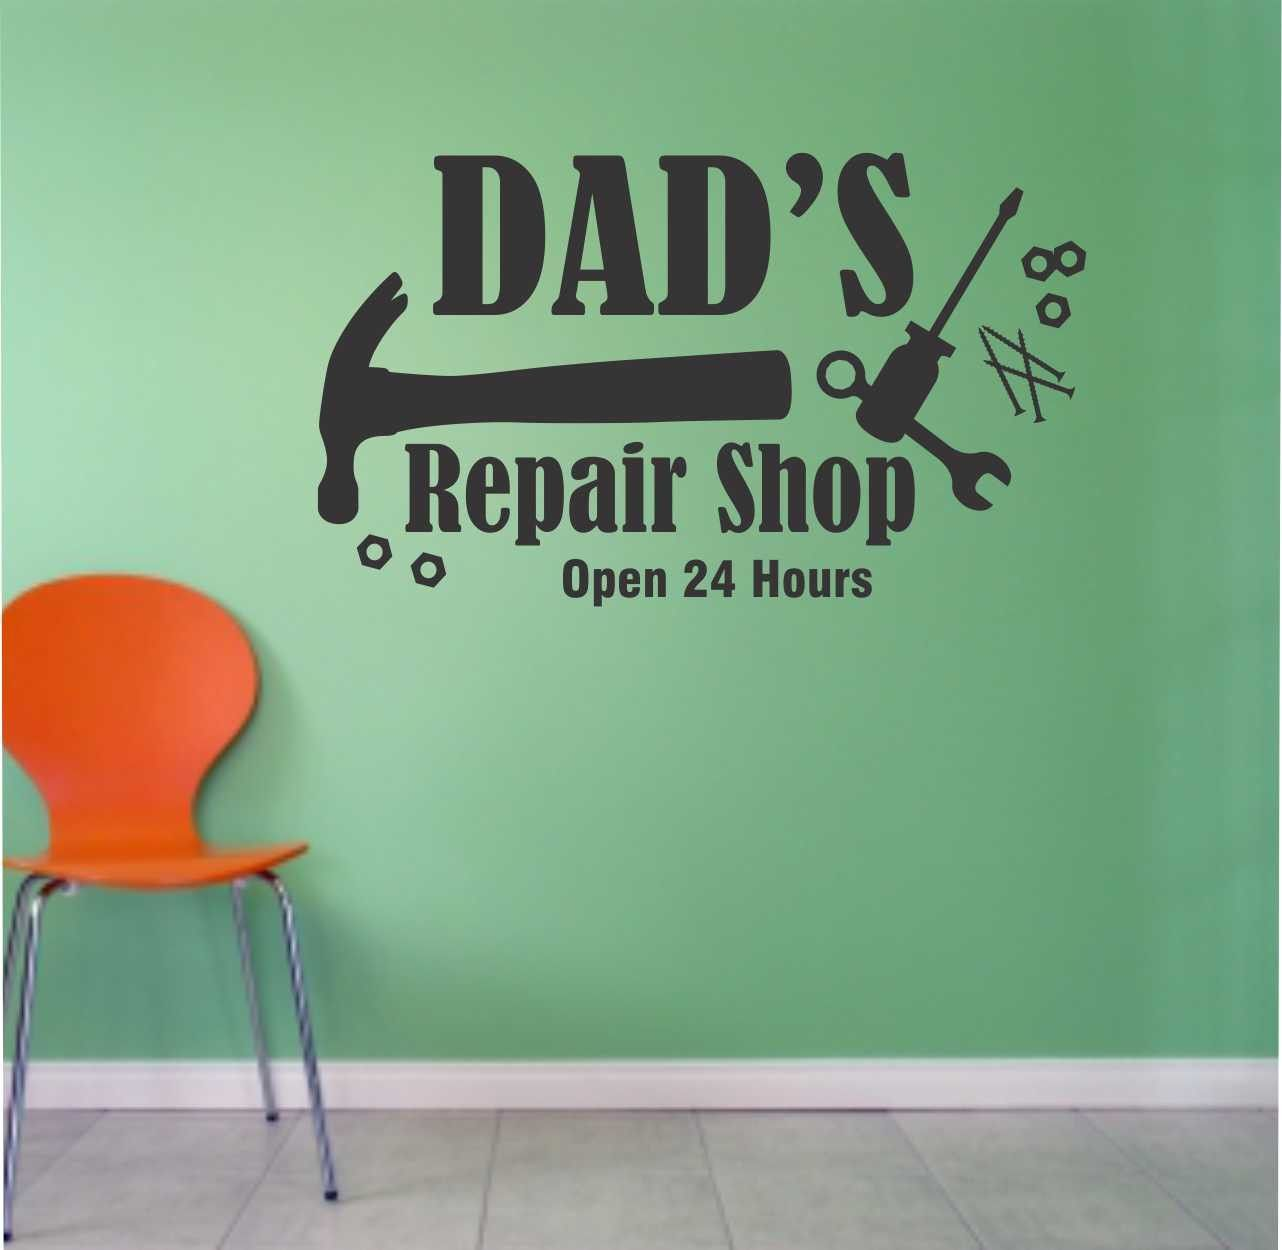 Dads Repair Shop Decal Garage Sign Quote Vinyl Wall Lettering - Custom vinyl wall decals for garage